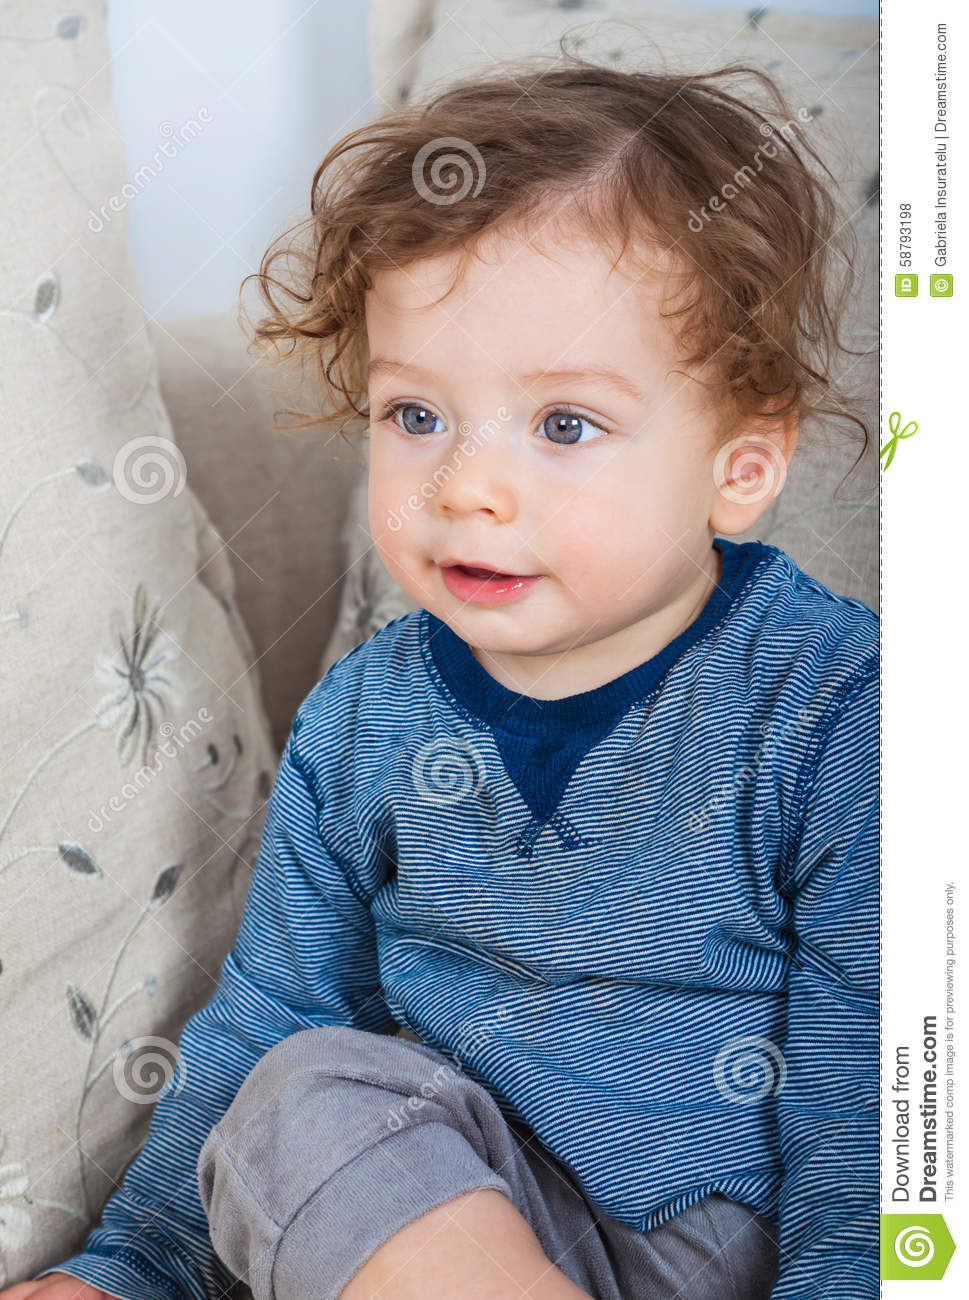 baby boy with curly hair stock photo image of baby